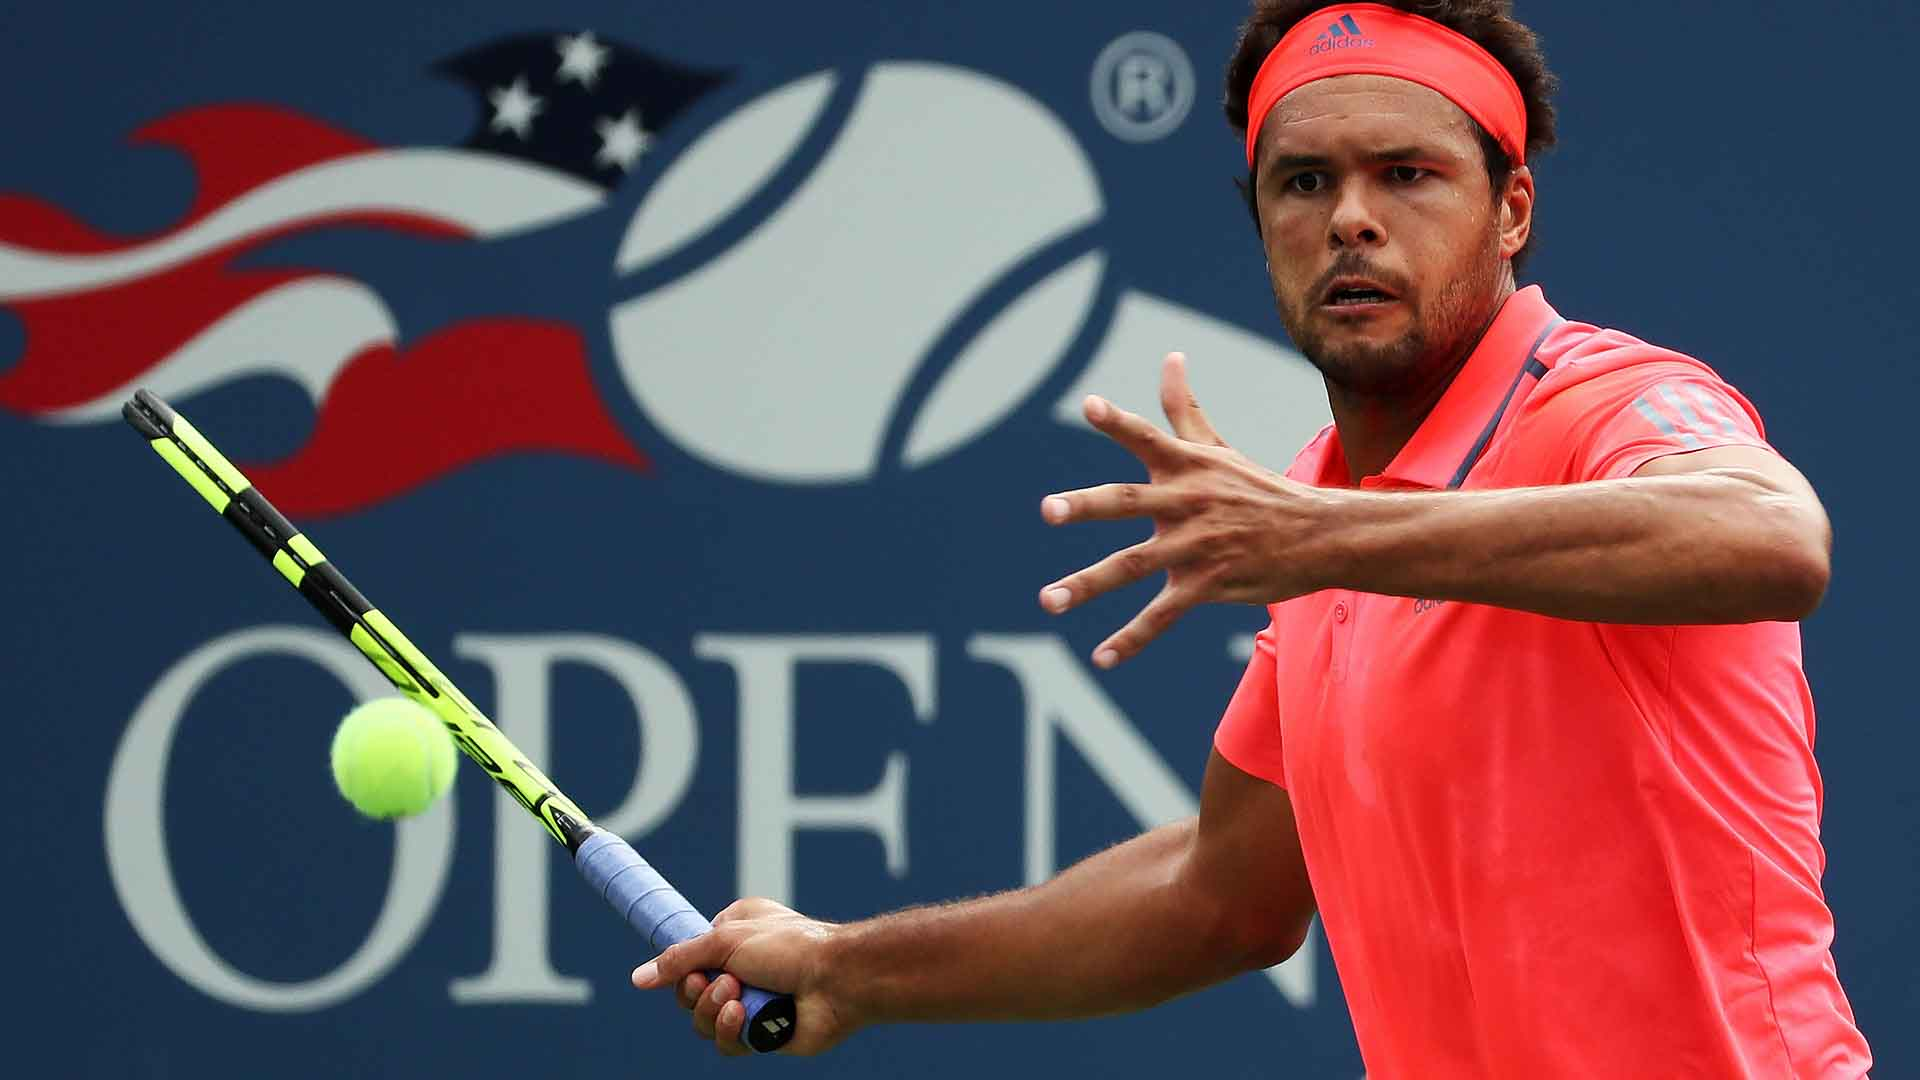 Tsonga US Open 2016 Wednesday1